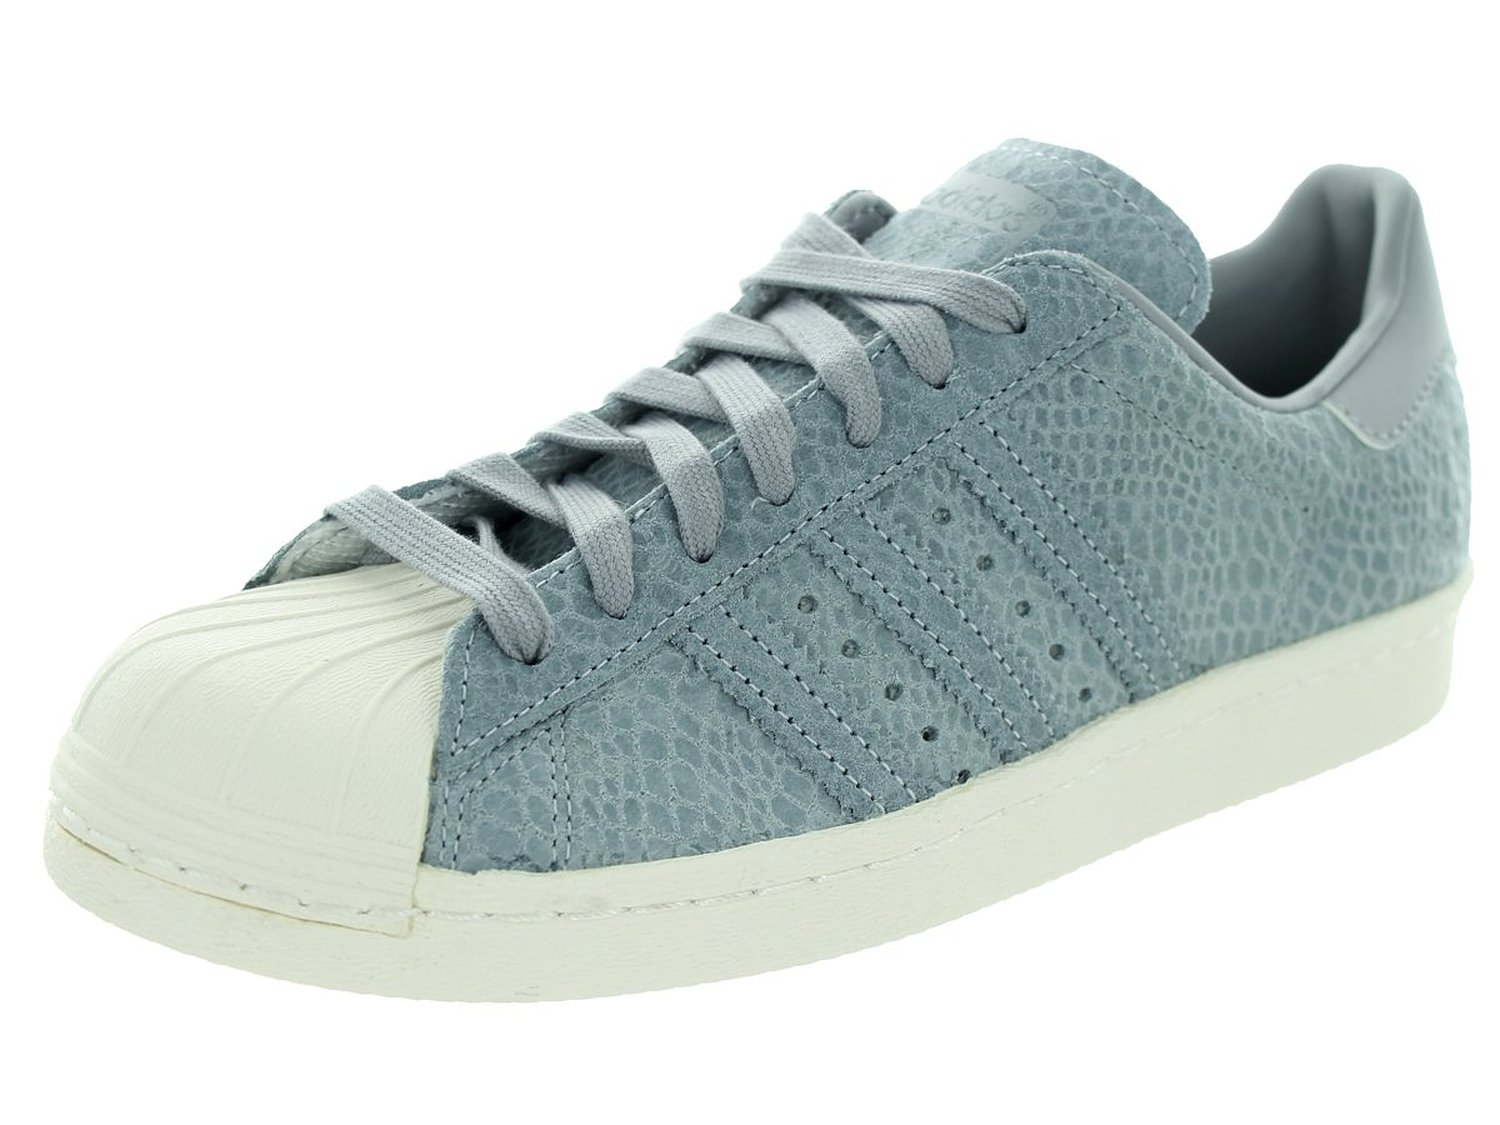 Adidas Women's Superstar 80s W Originals Basketball Shoe ...